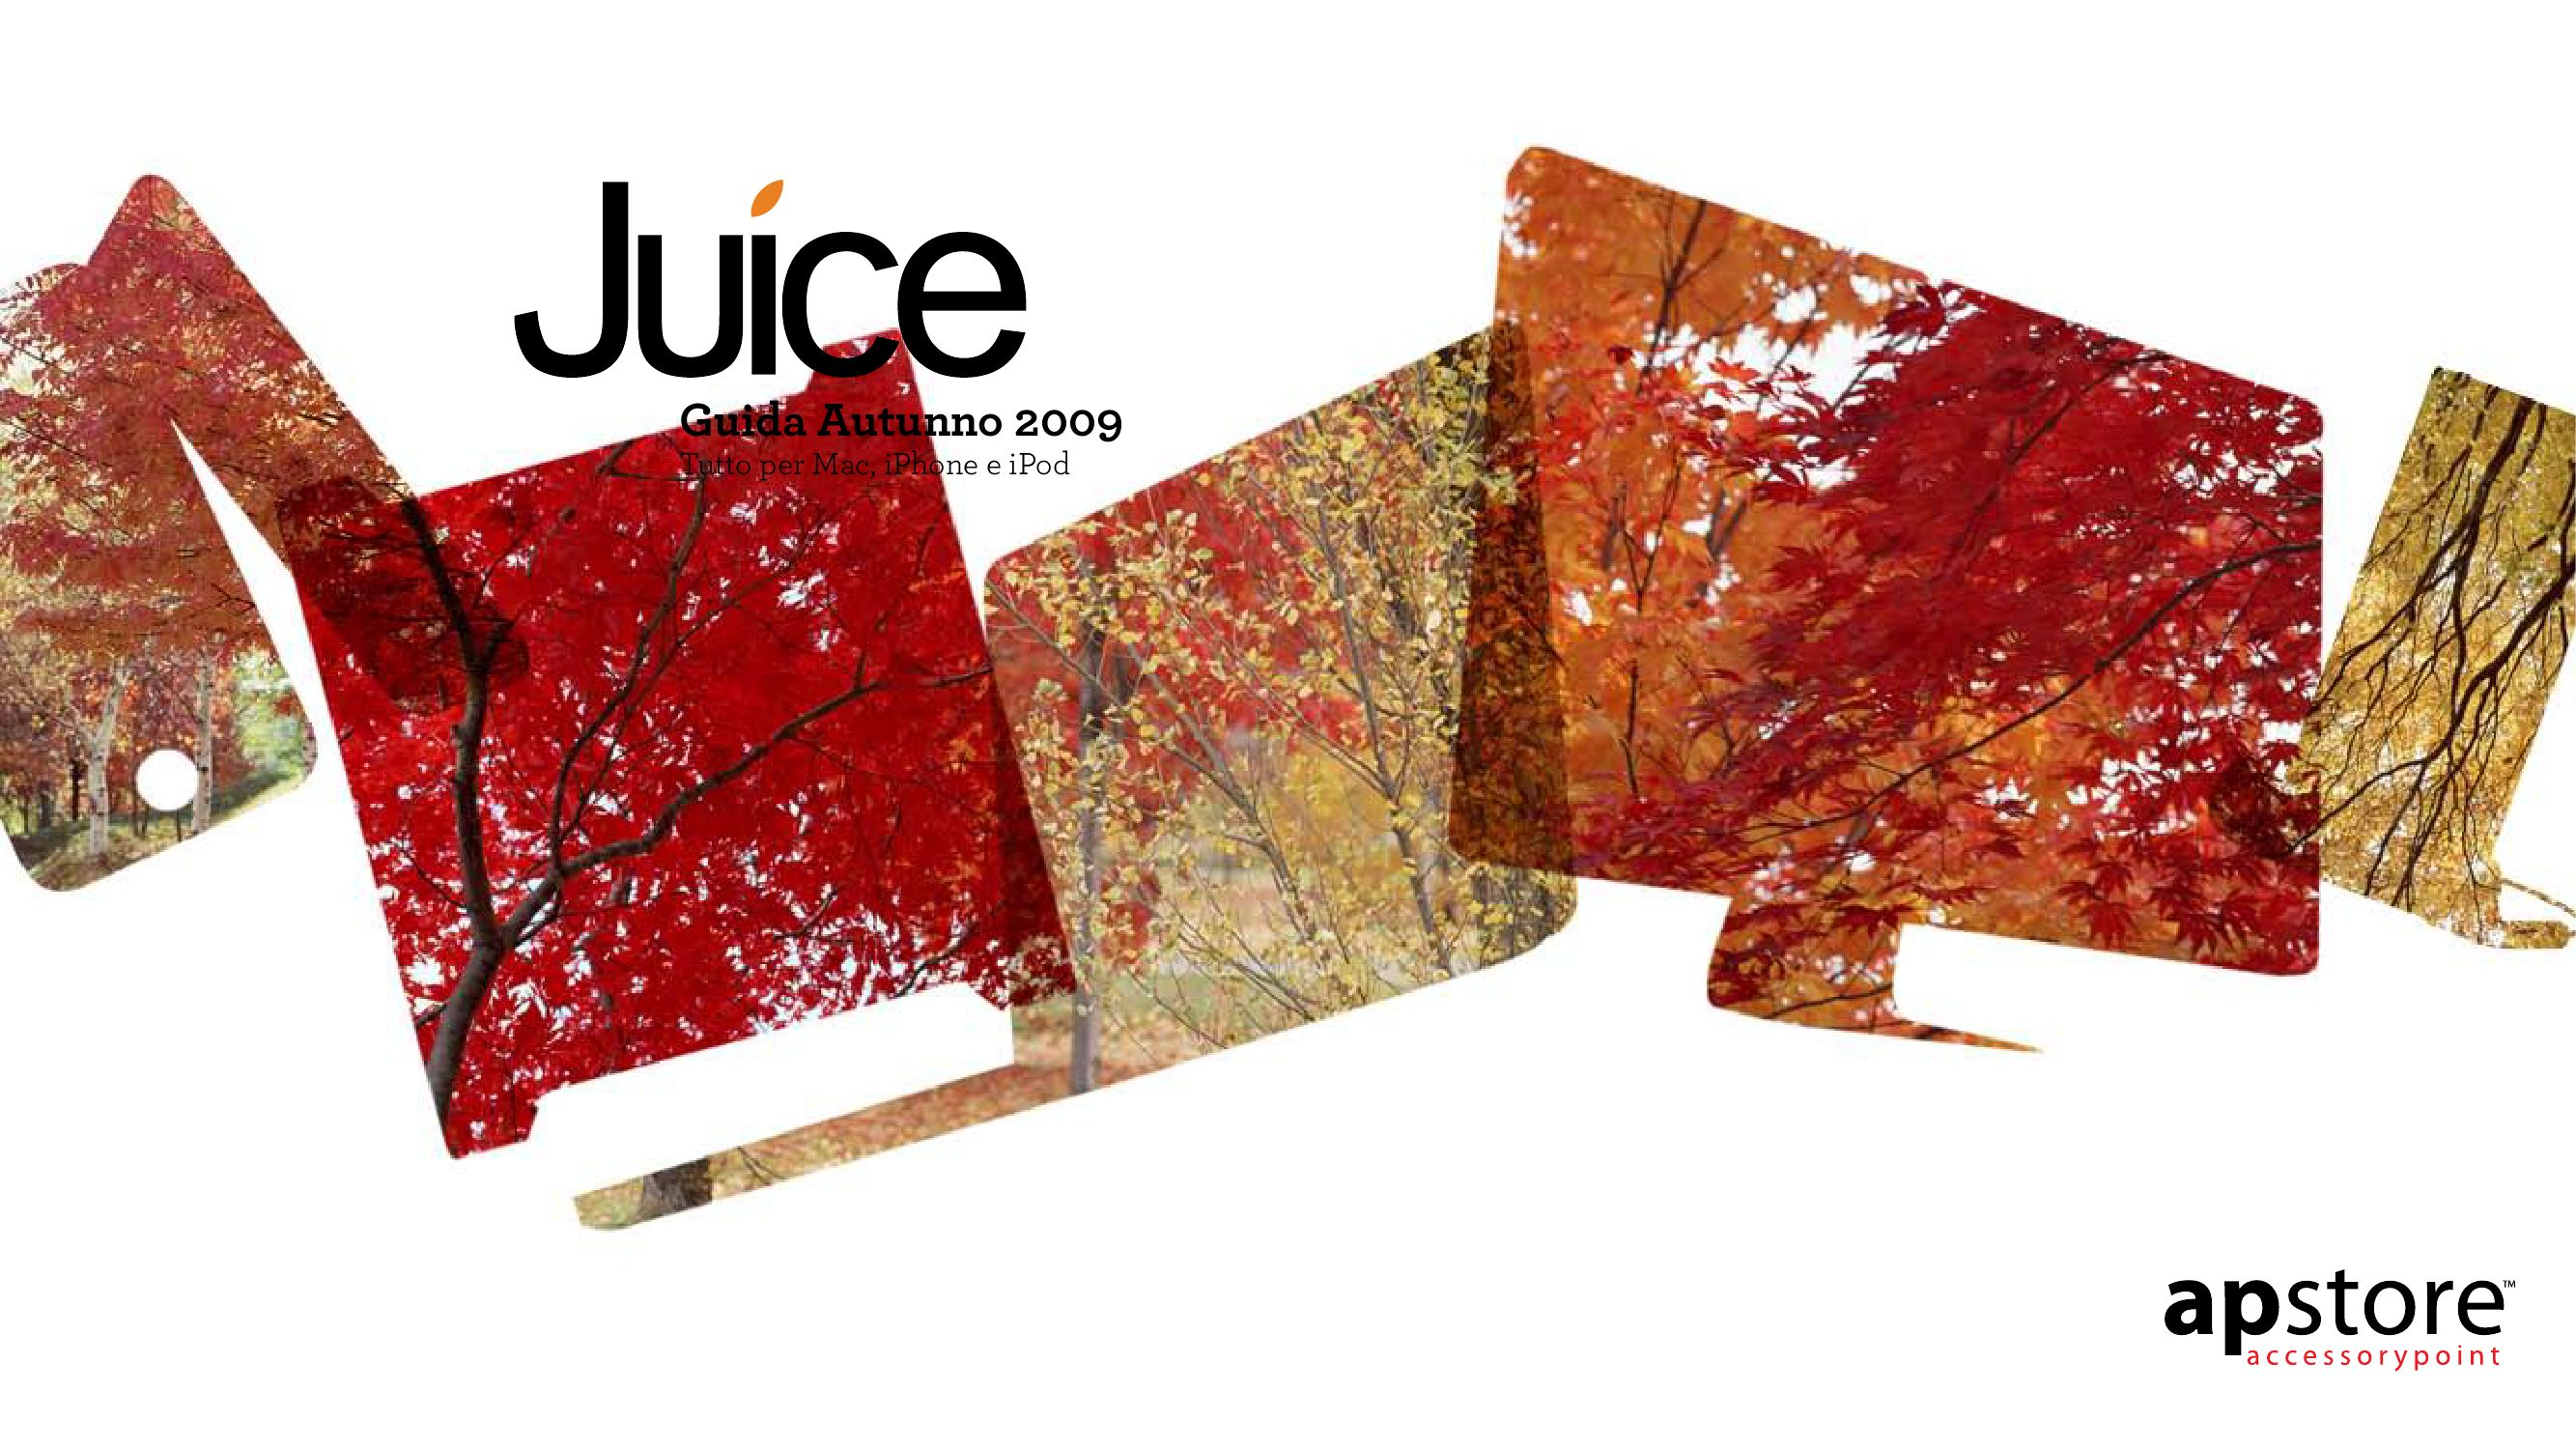 Juice nr. 2 - 10 09 by Ap Store spa - issuu 9e7539ab44c0